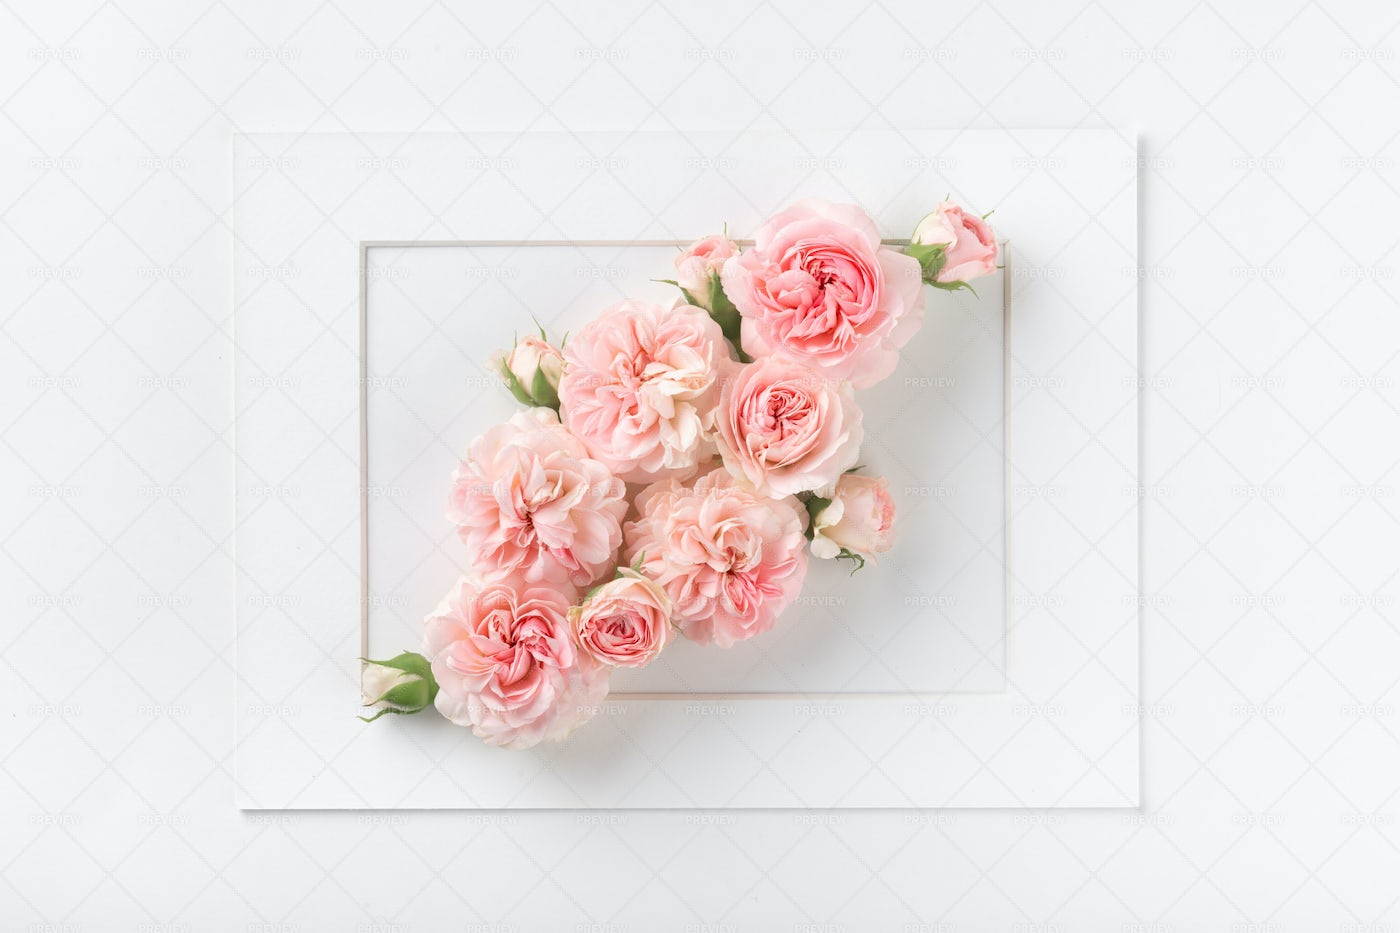 Rose Flowers In A Frame: Stock Photos